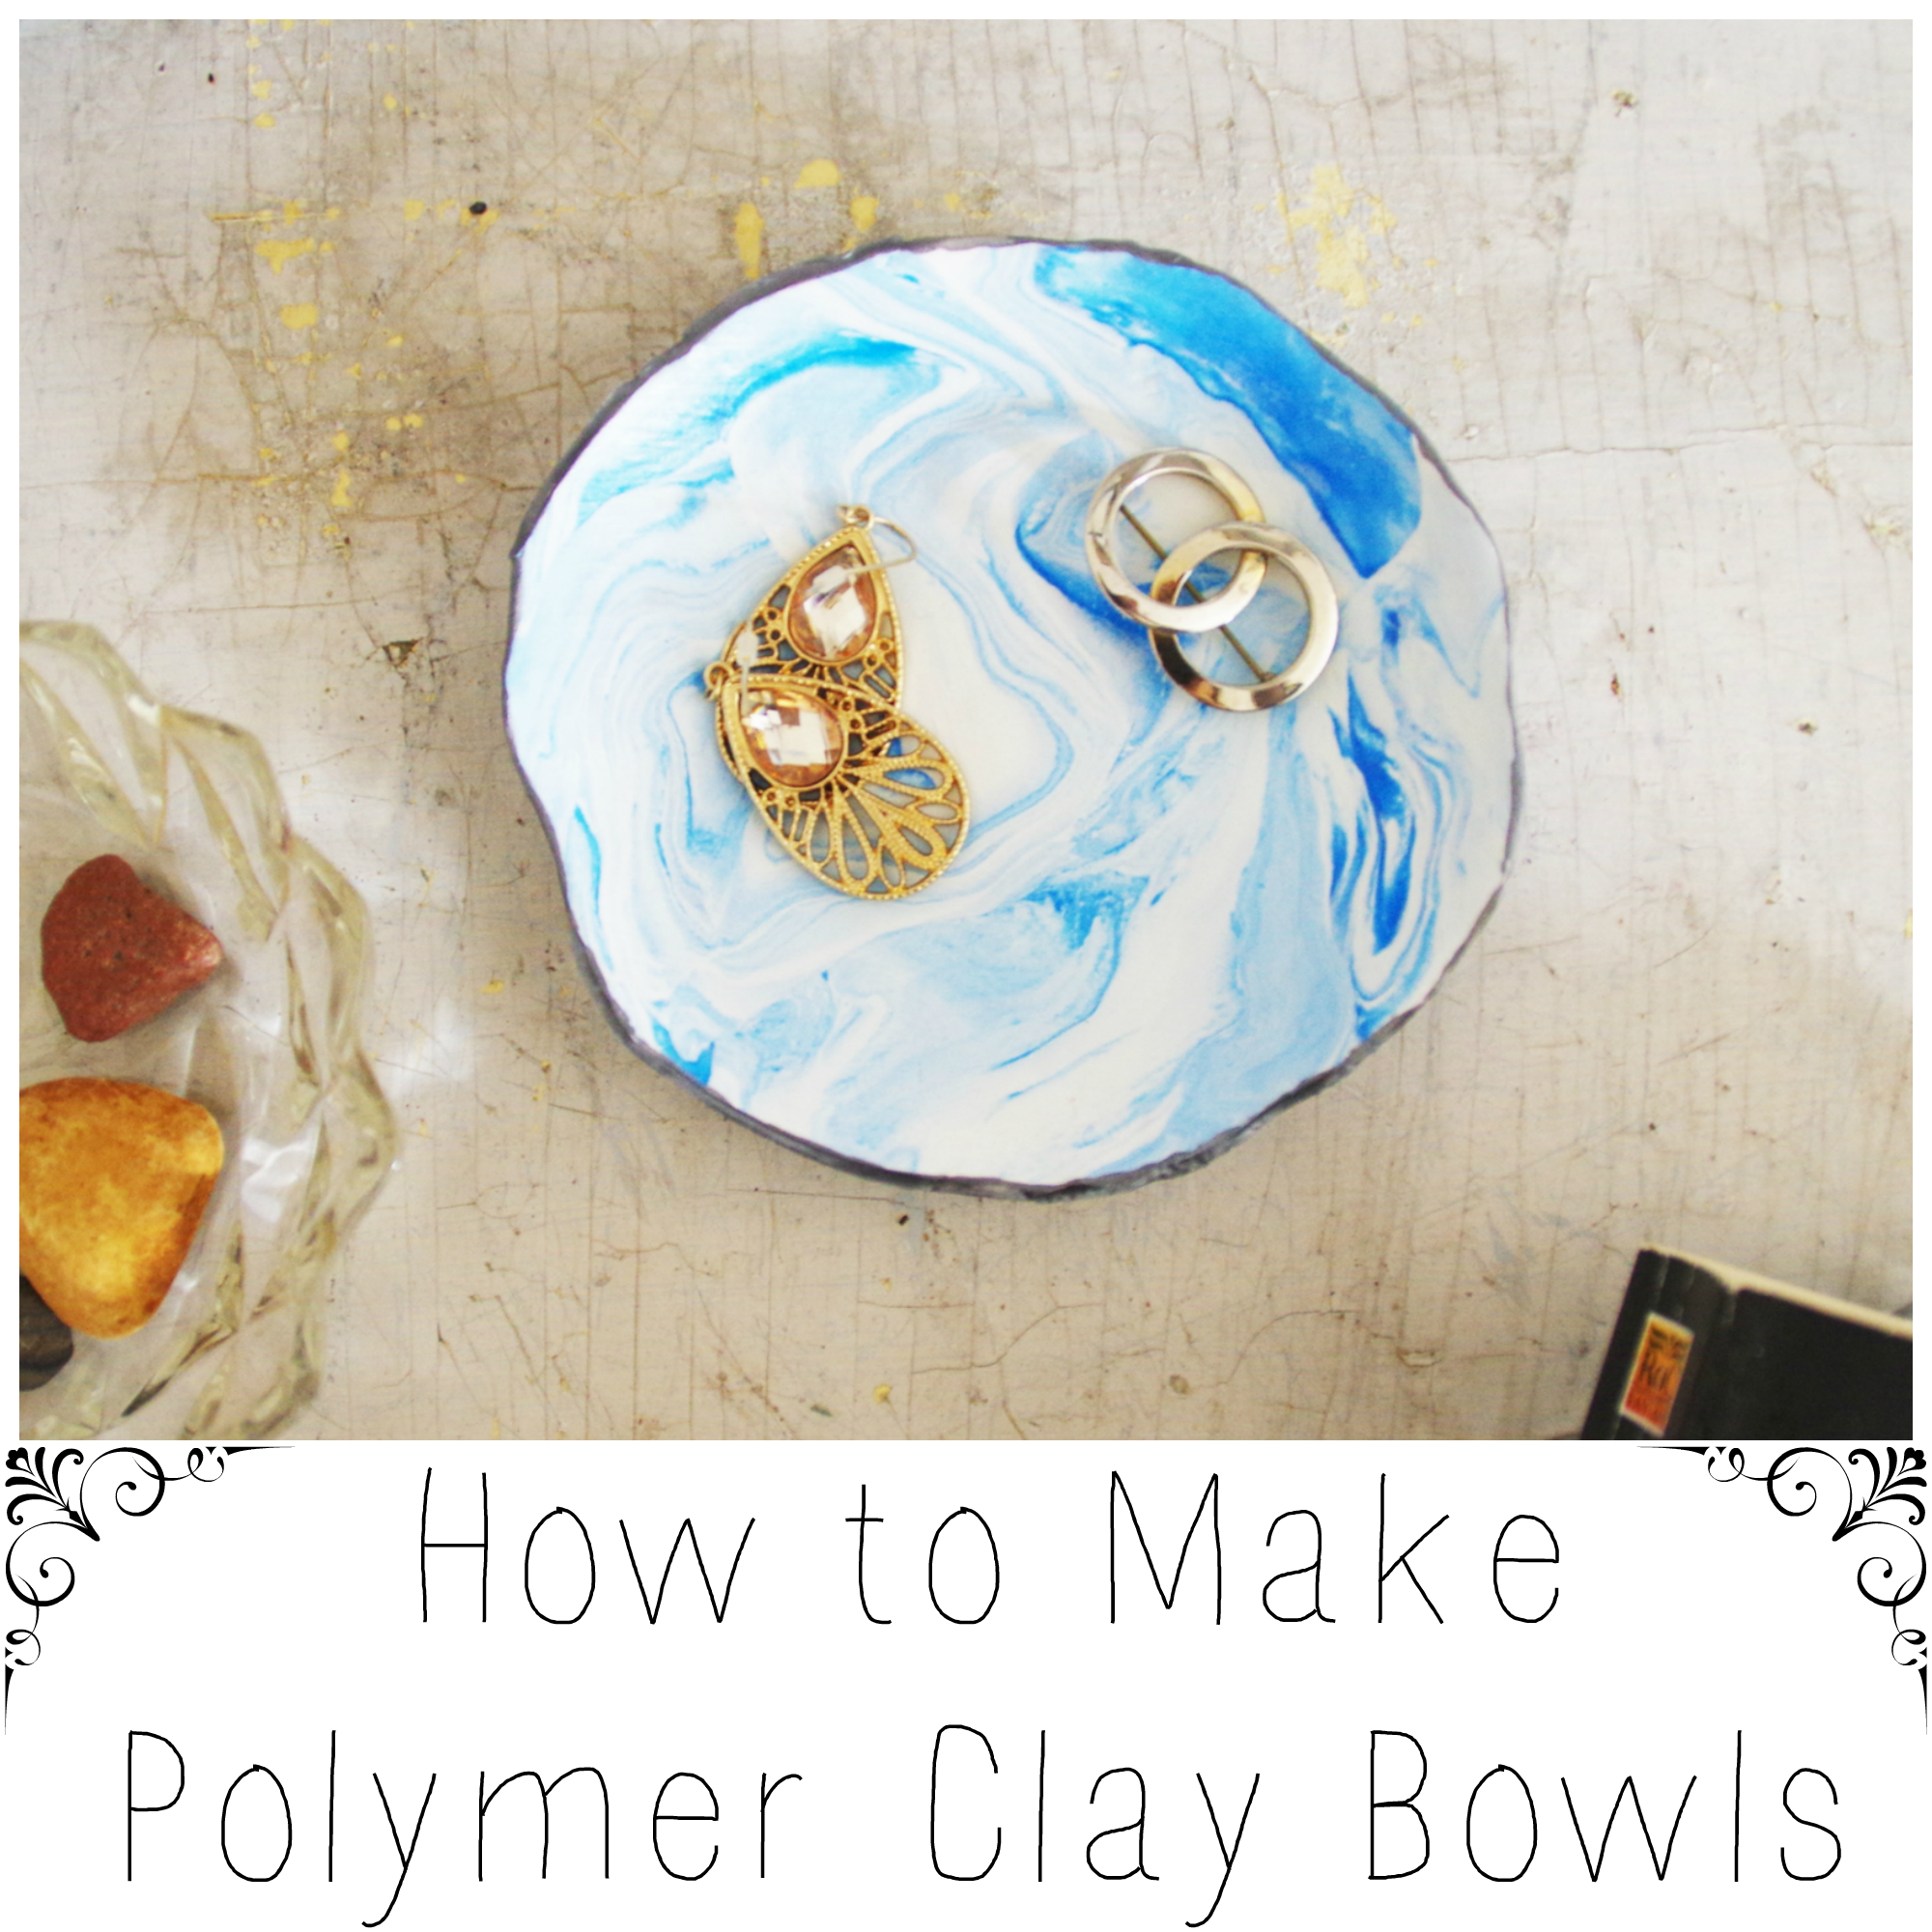 How to make polymer clay